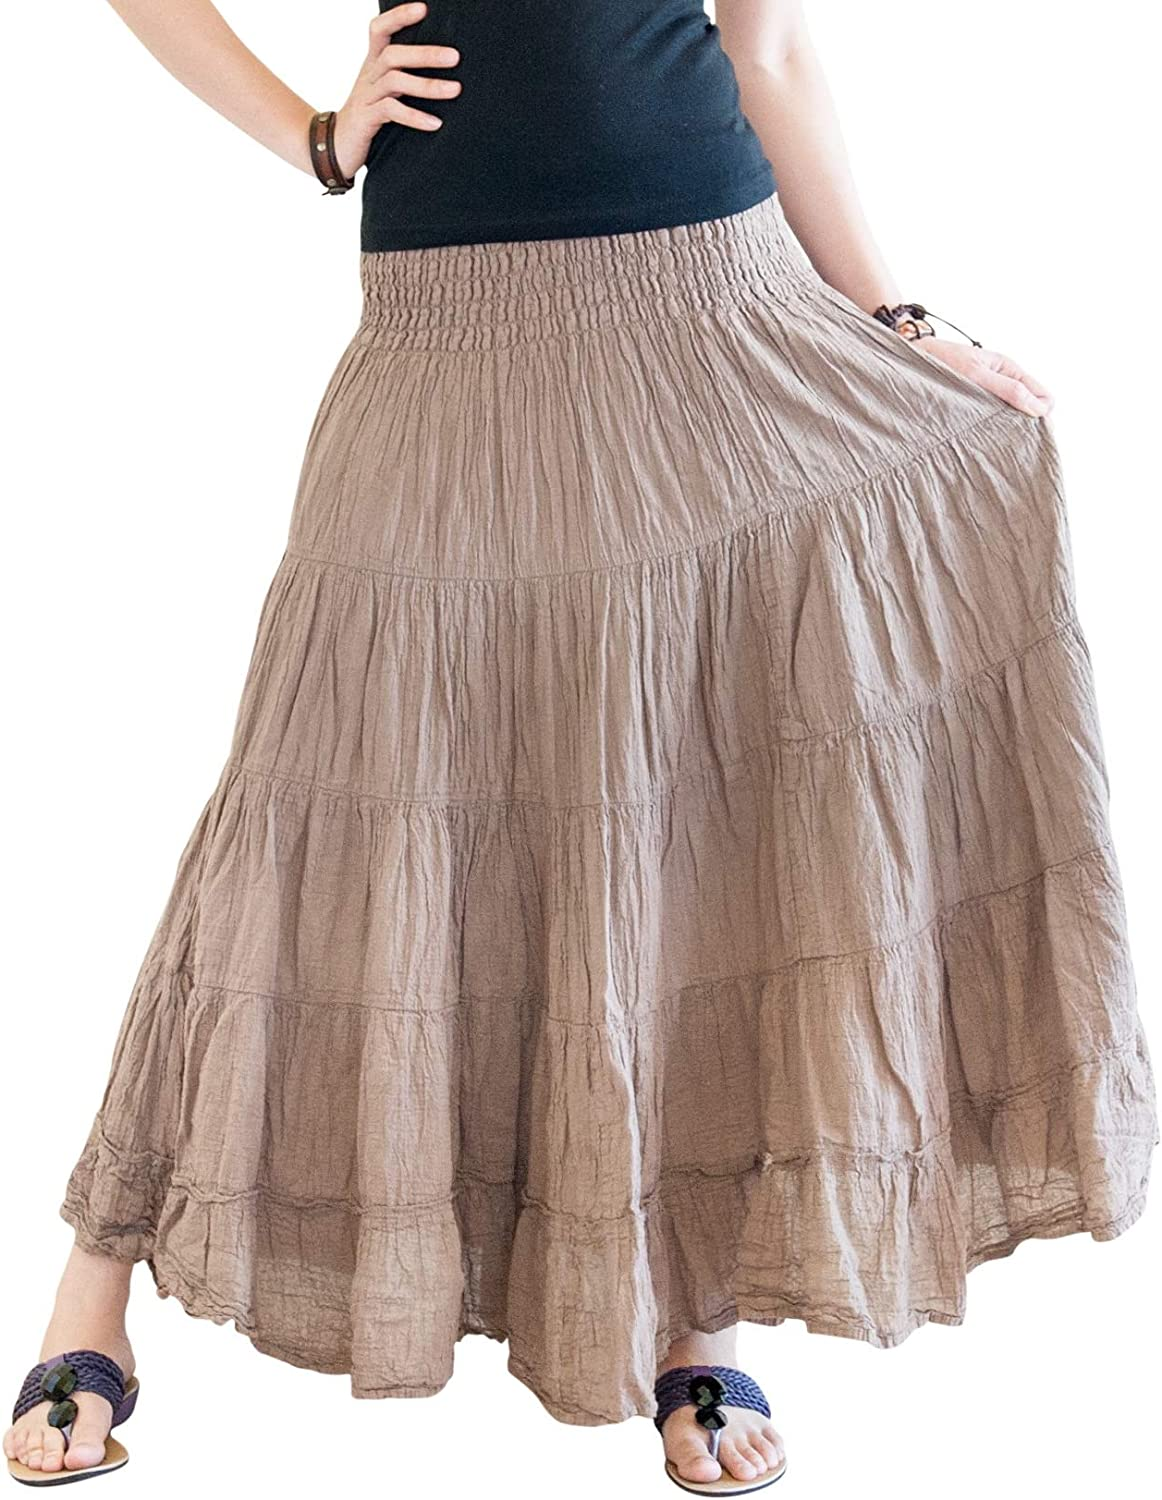 BohoHill Broomstick Tiered Shirred Long Skirt Bohemian Gypsy Style